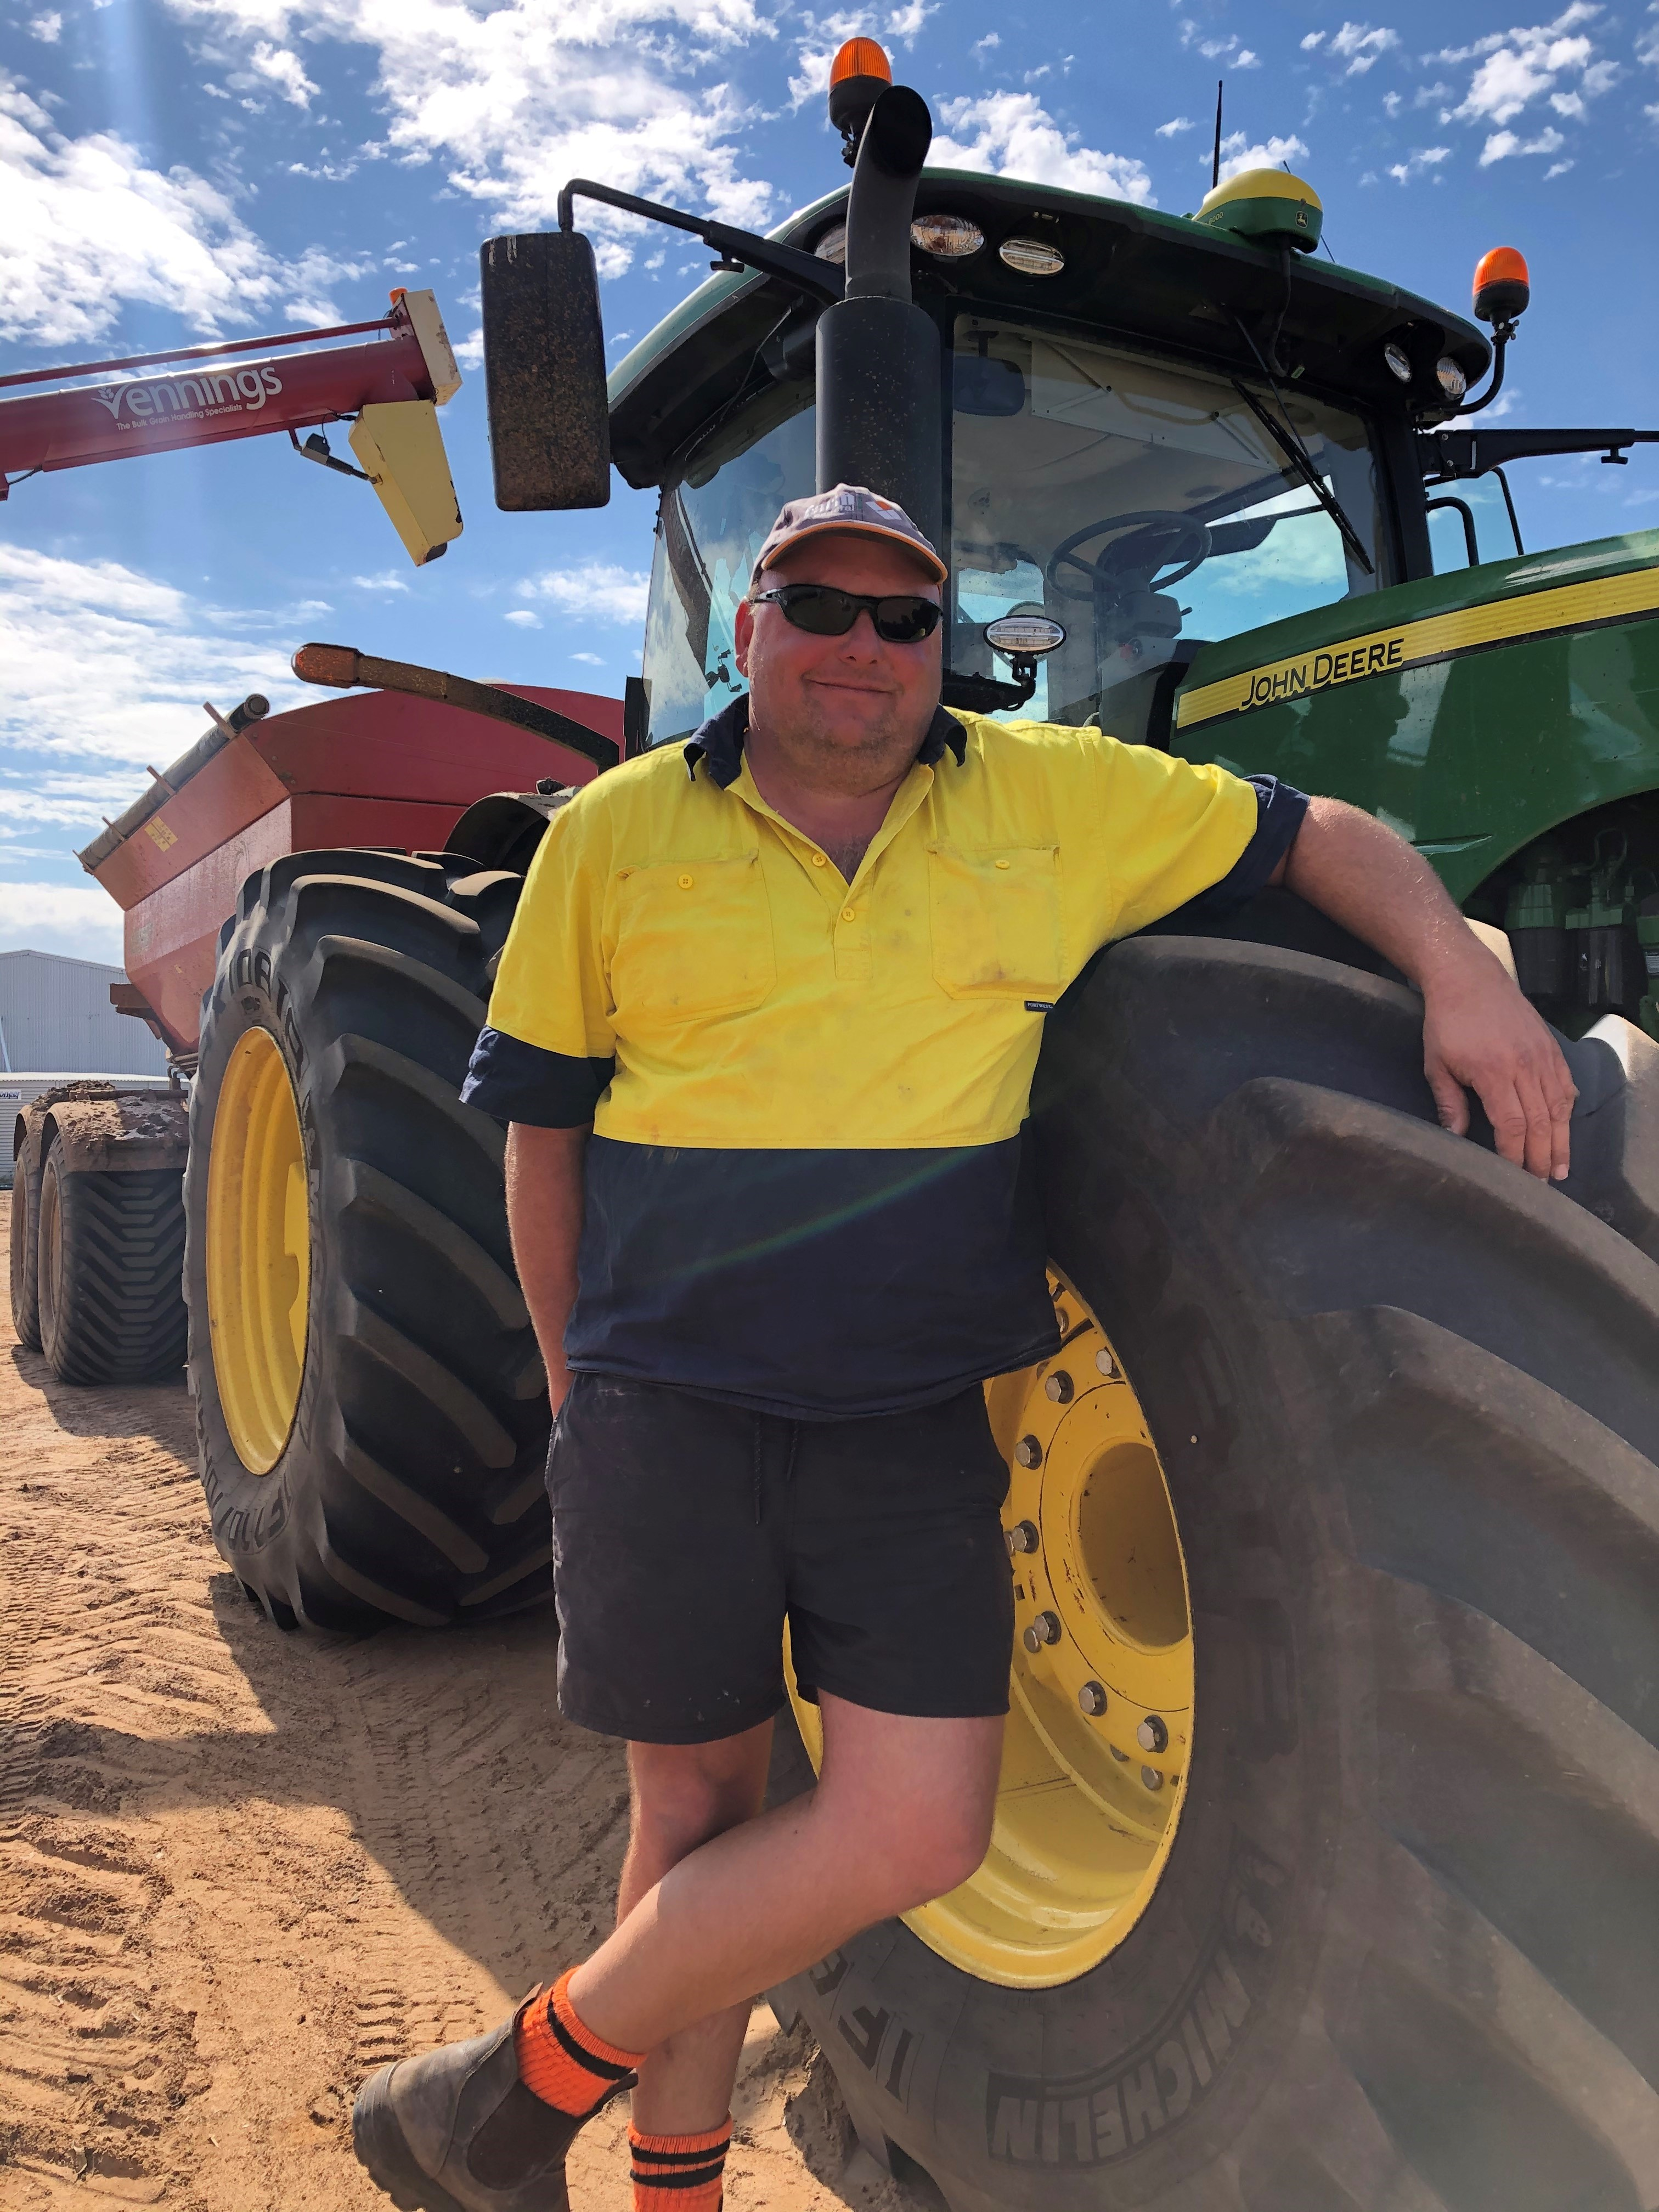 Man in yellow hi-vis shirt and shorts, wearing a light-coloured cap, leans against tractor wheel